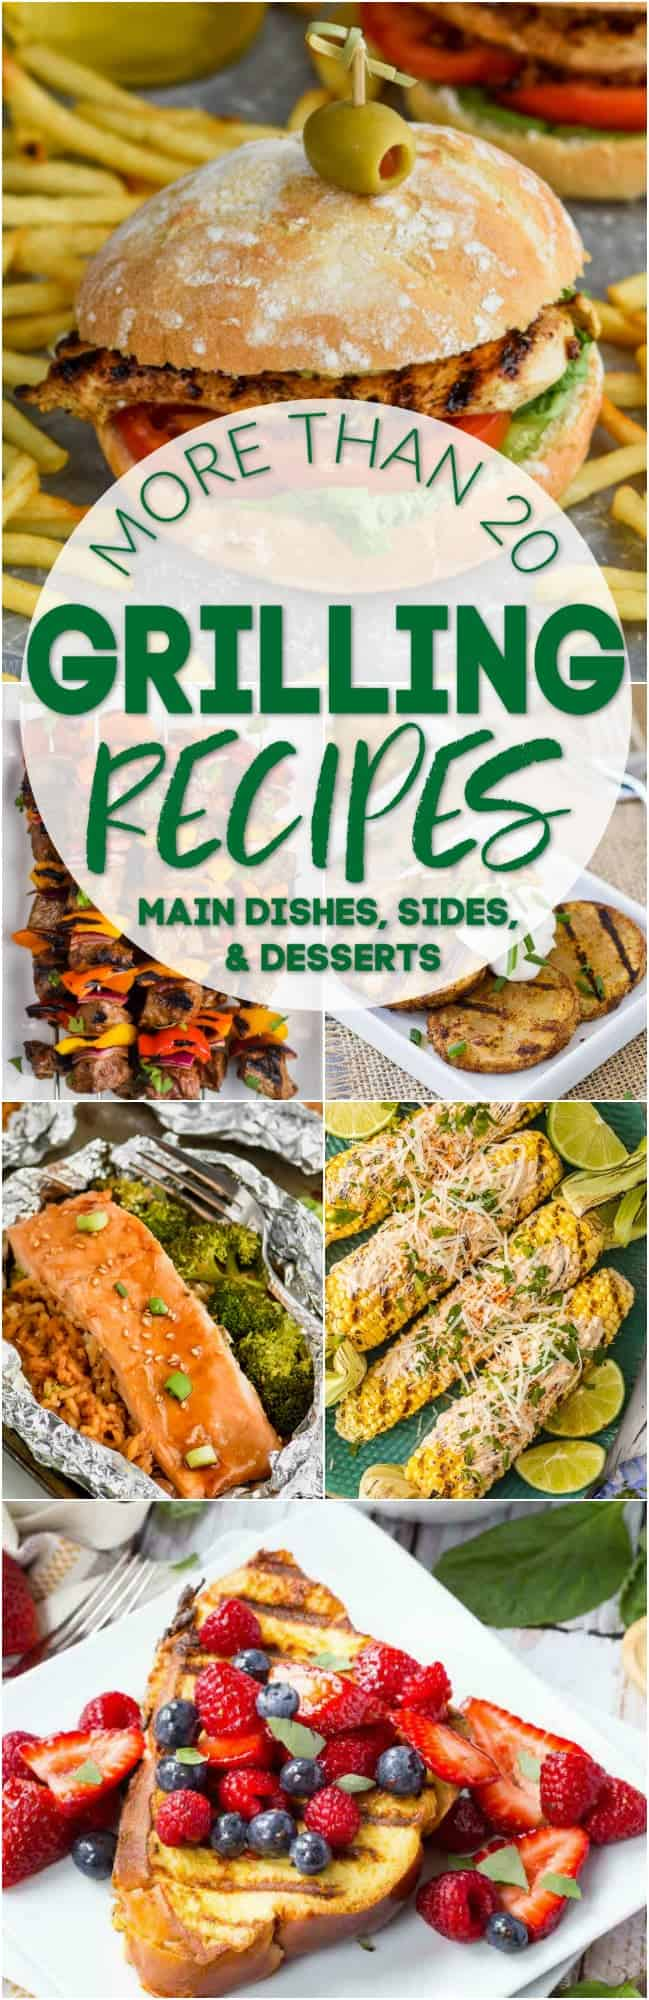 collage of photos of grilling recipes